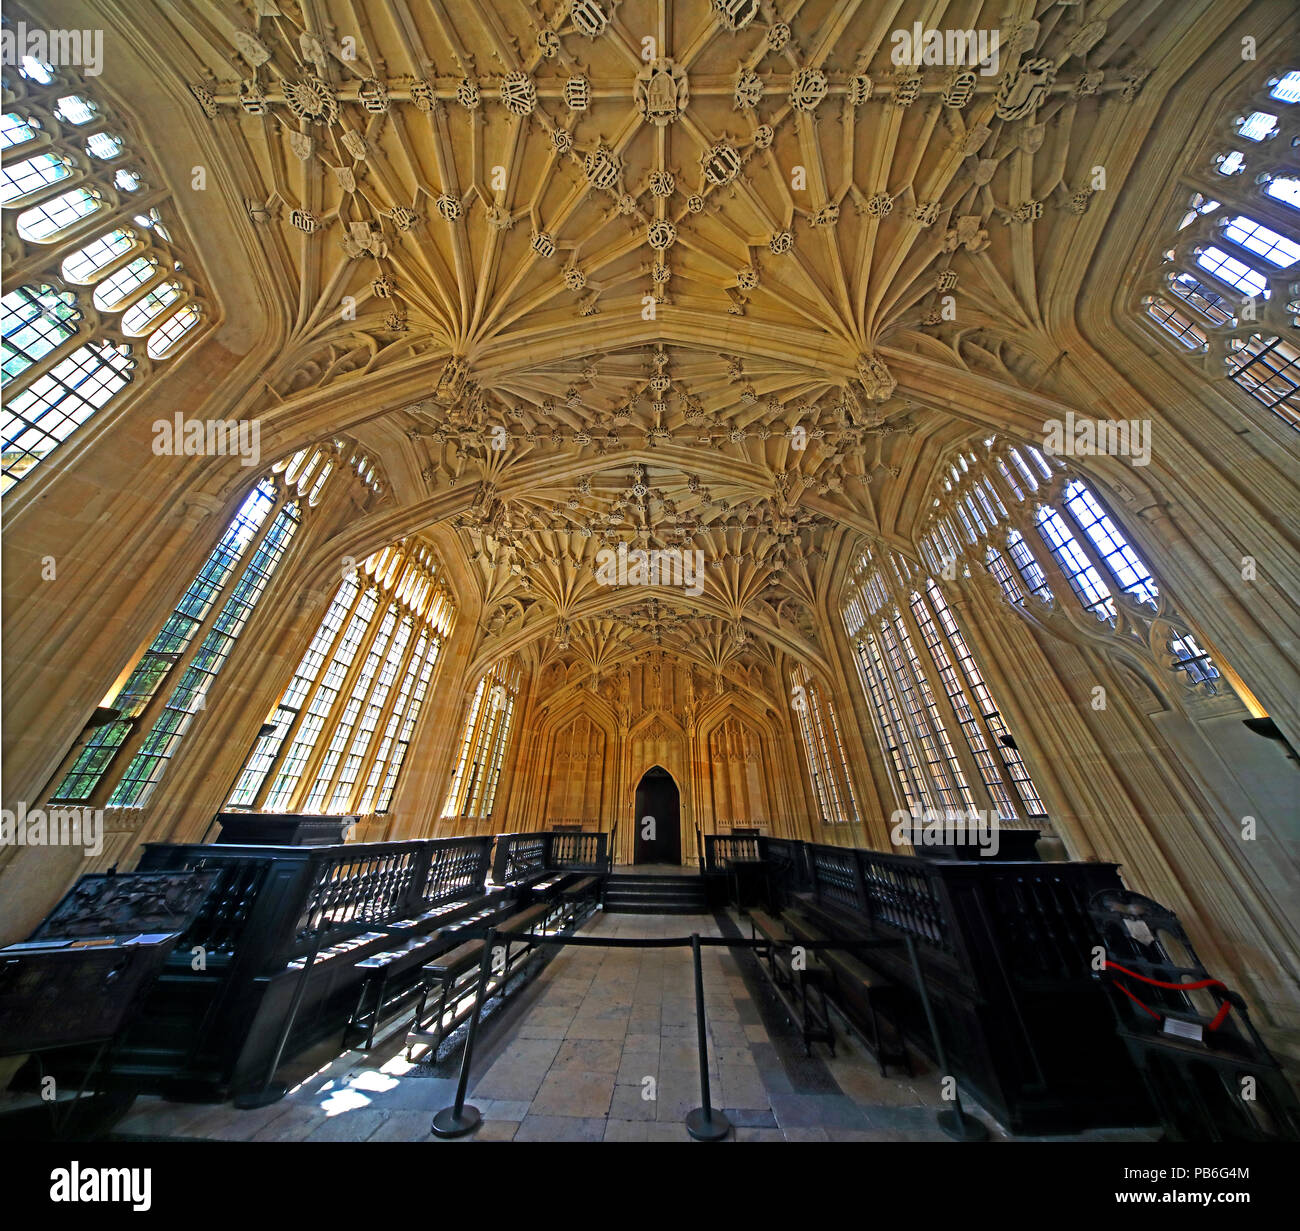 @HotpixUK,GoTonySmith,divinity,school,UK,stonework,building,interior,inside,libraries,learning,Perpendicular